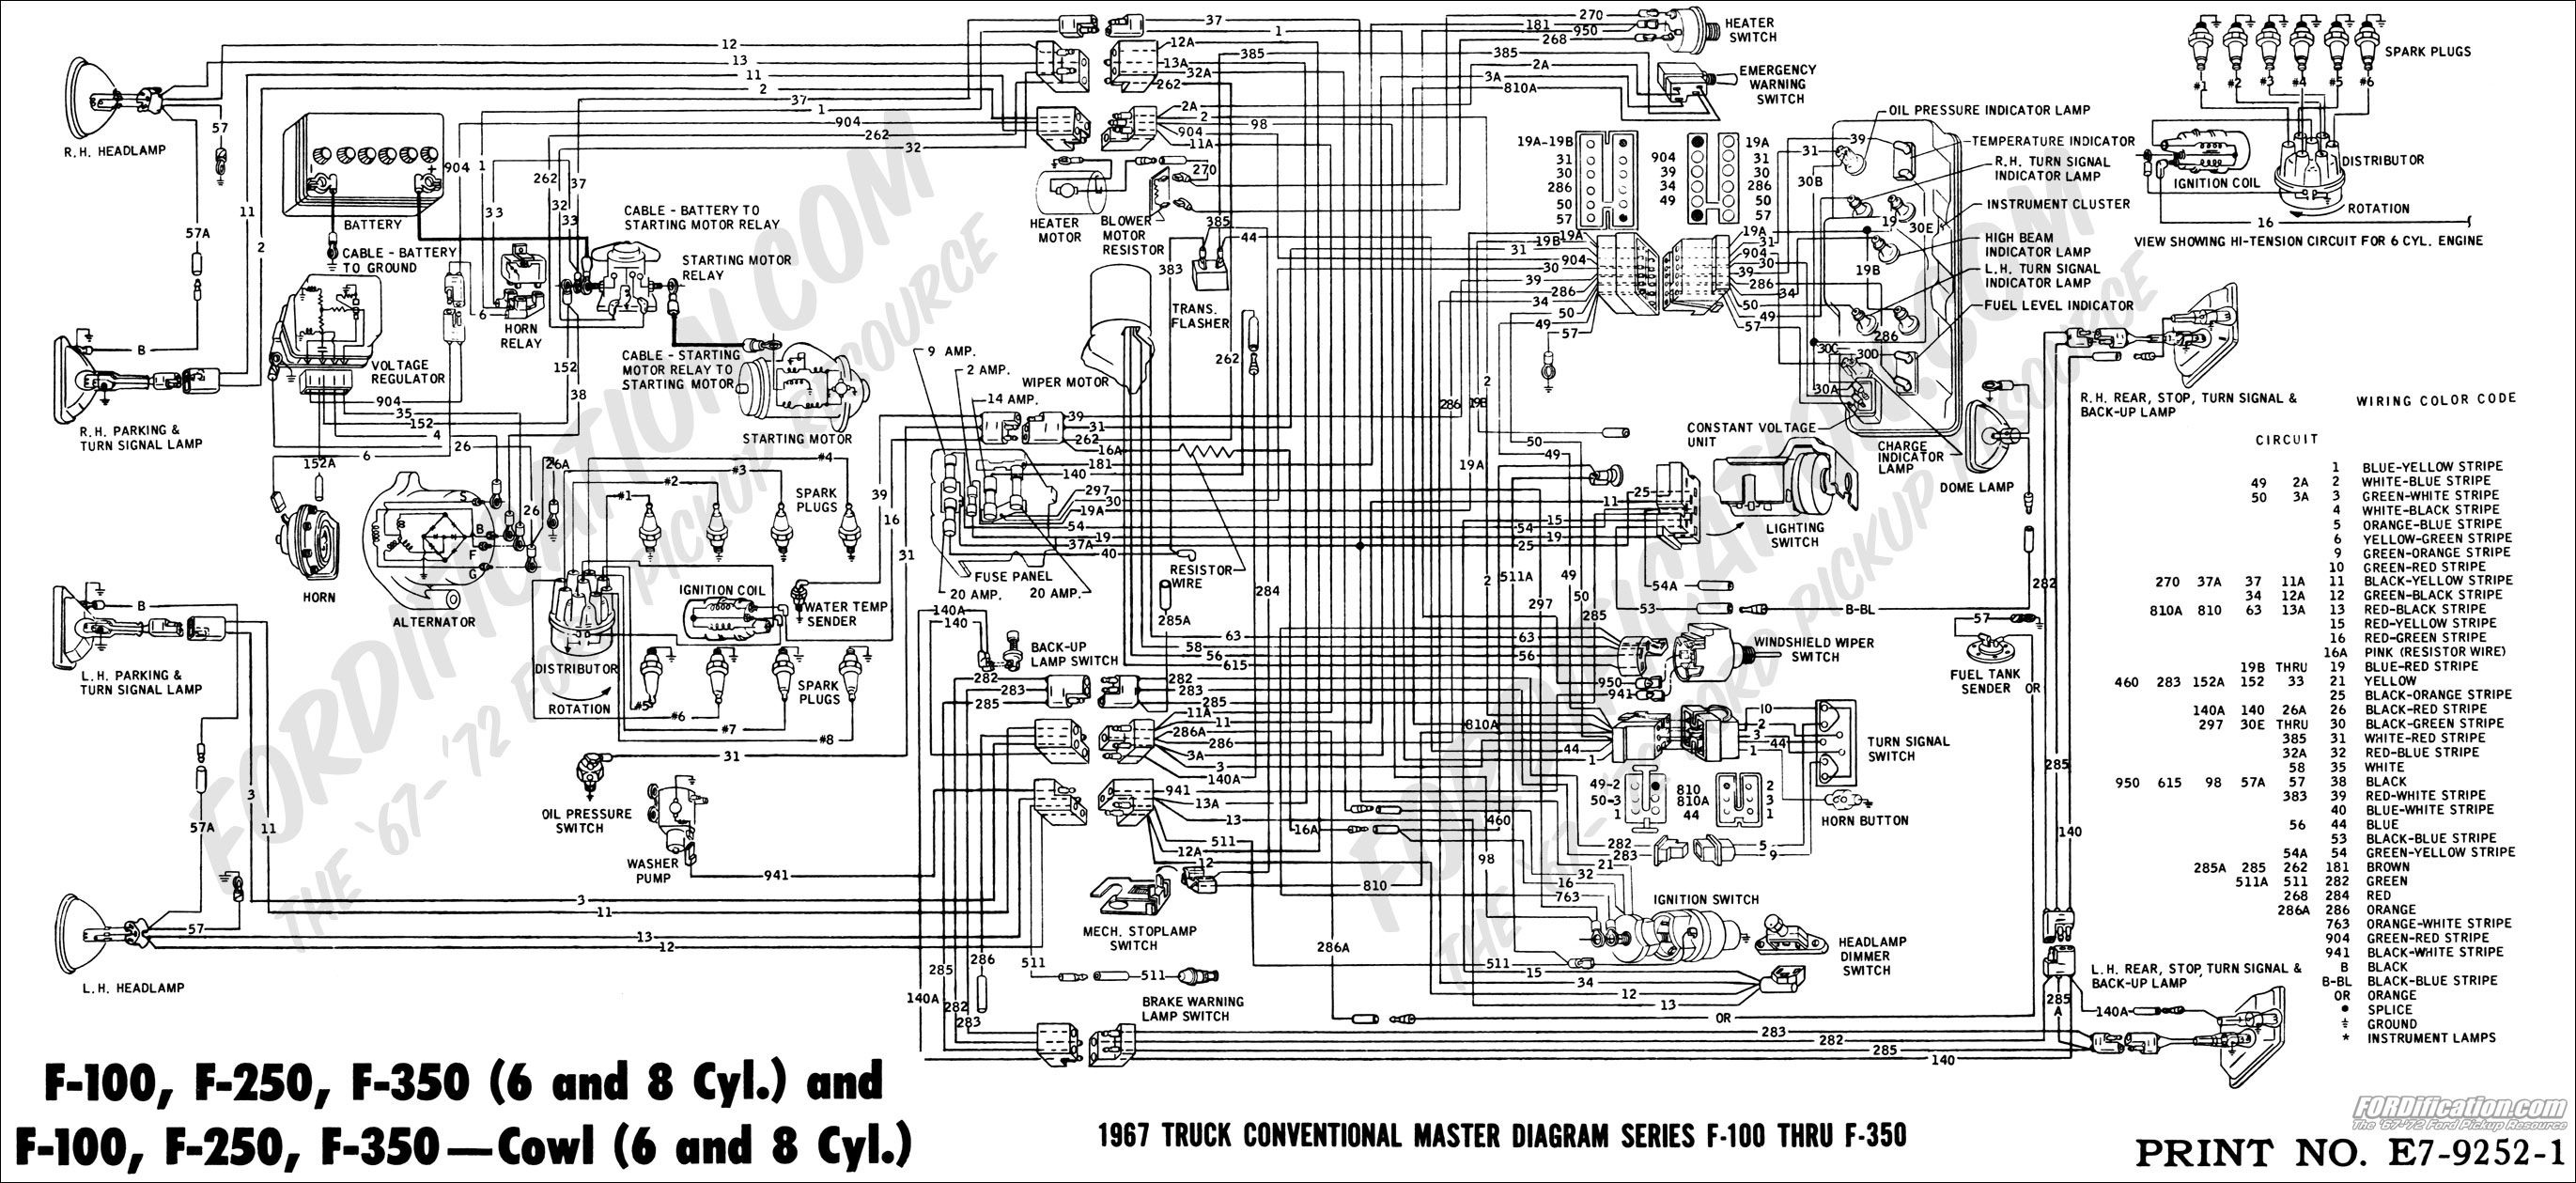 67masterdiagram wiring diagrams ford 2014 f150 readingrat net 1994 Ford Ranger Wiring Problems at webbmarketing.co